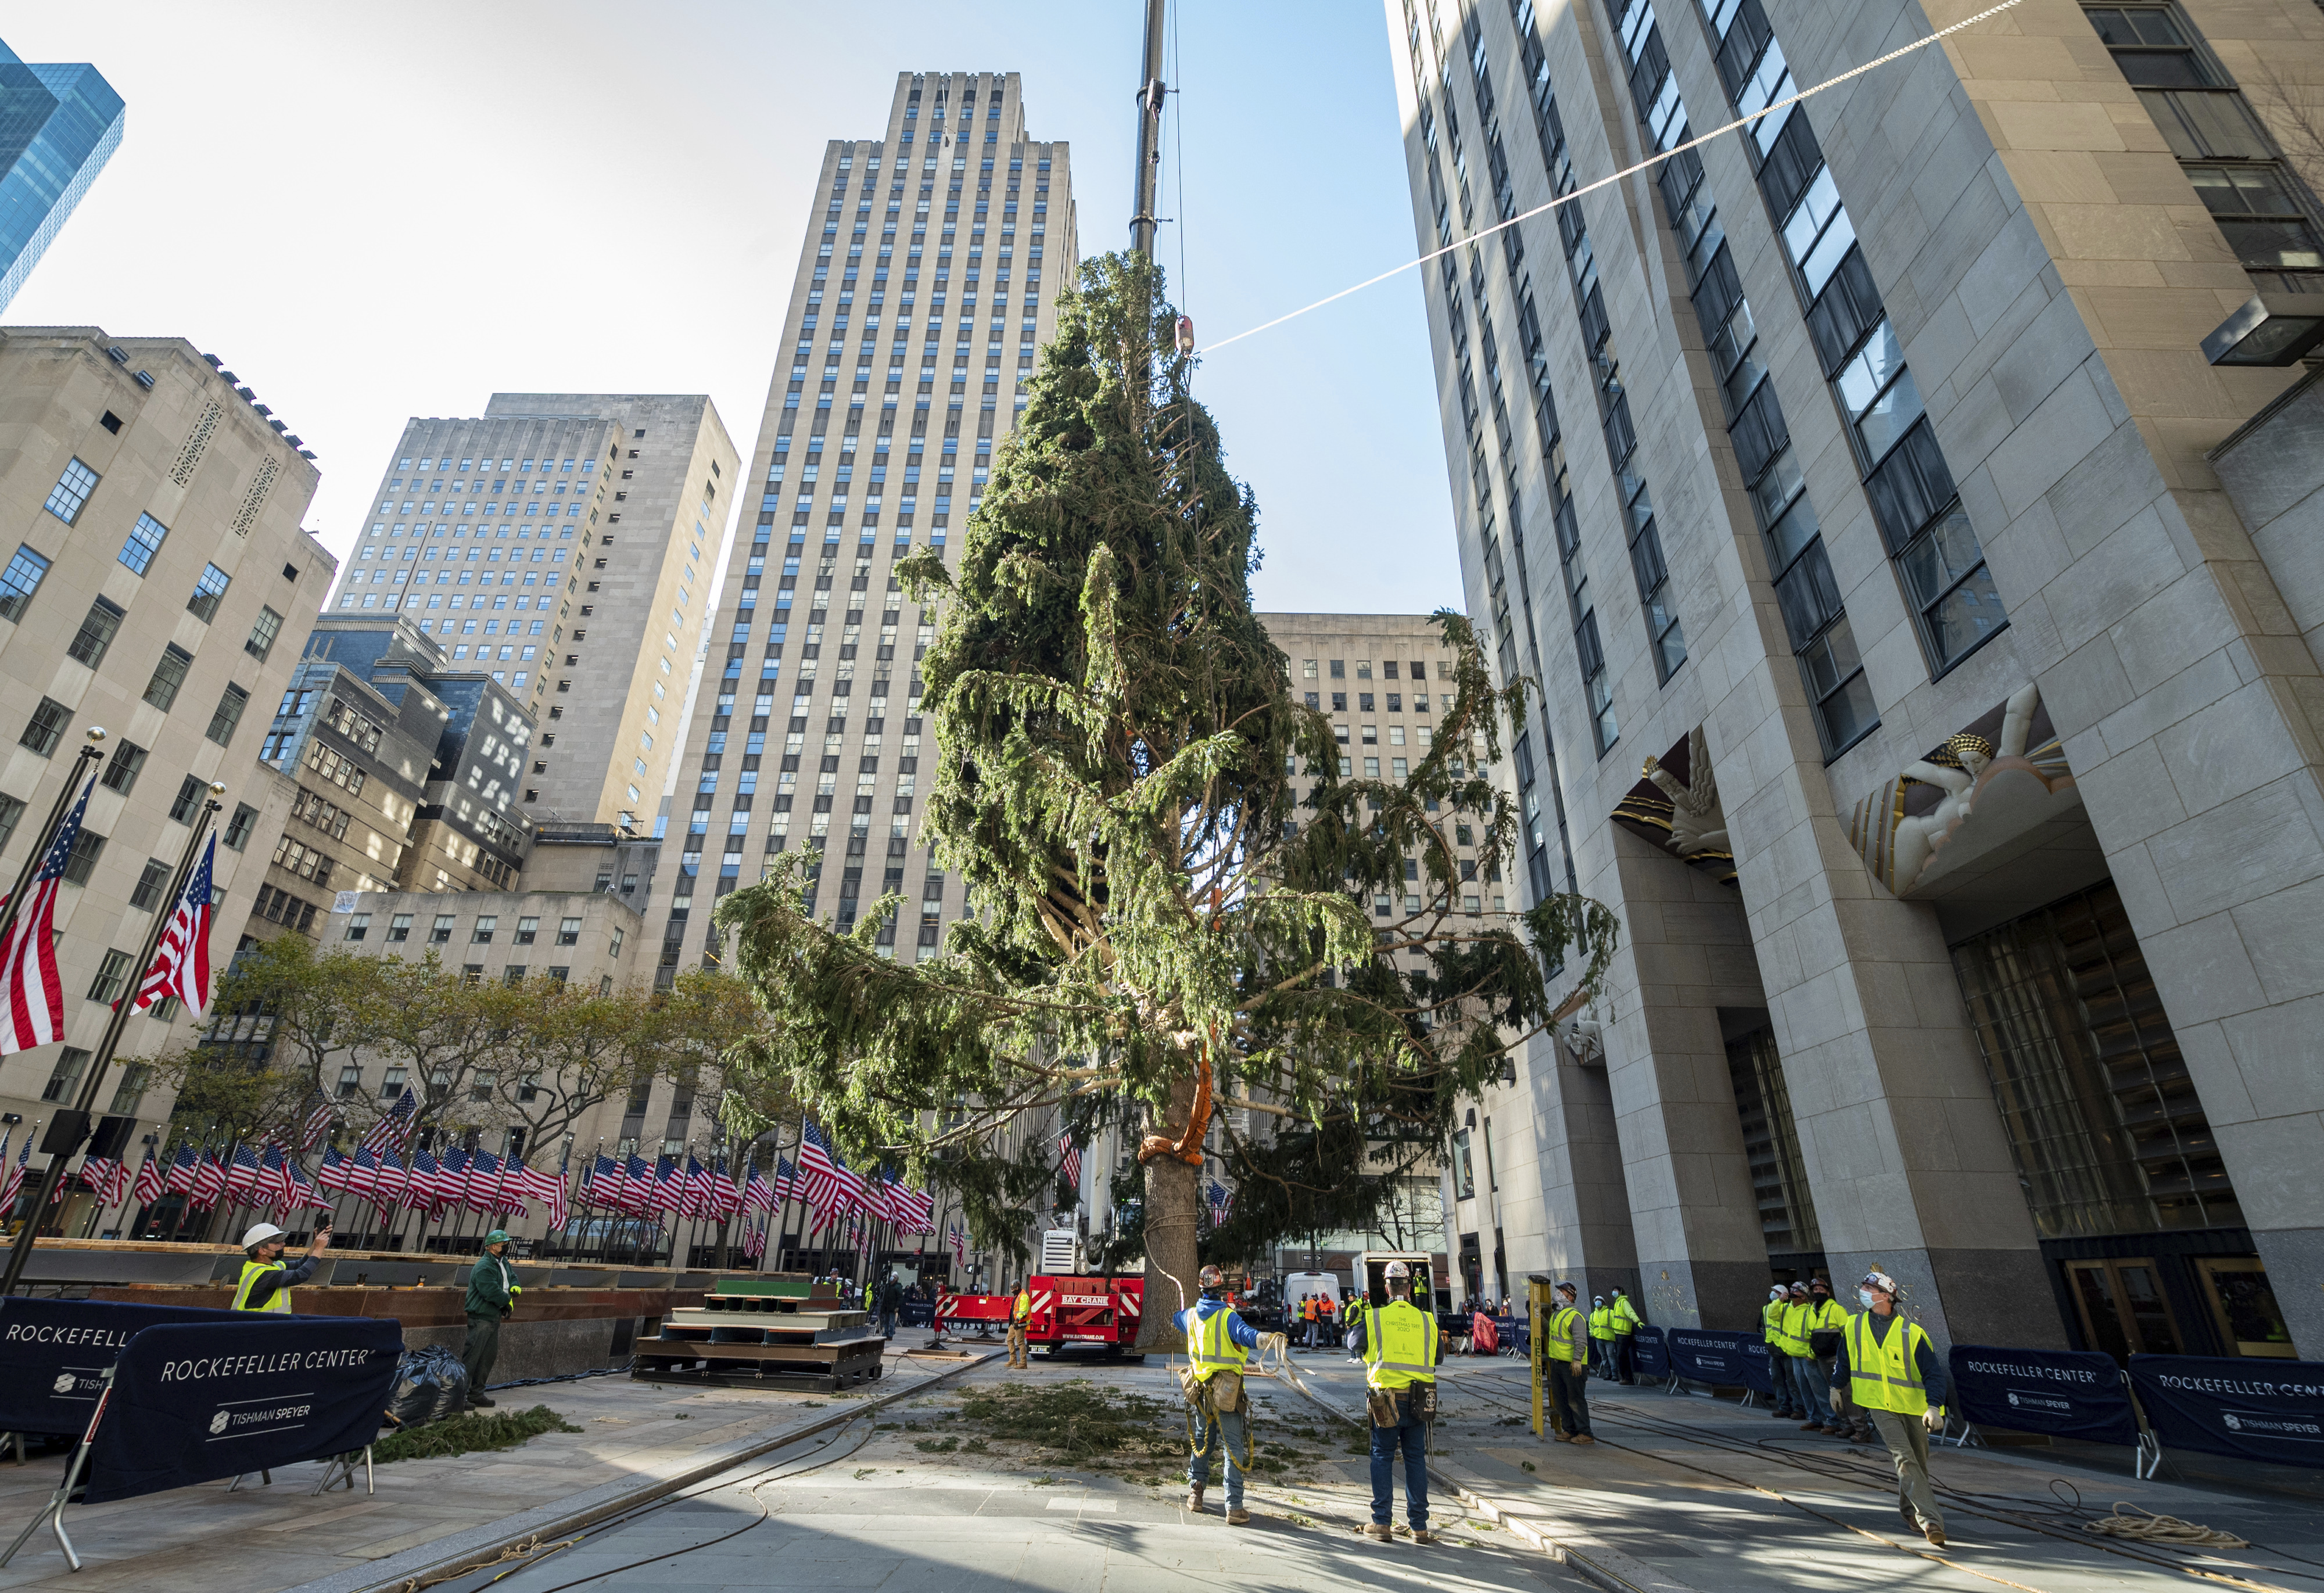 How Tall Is The Christmas Tree In Rockefeller Center 2021 Rockefeller Center S Christmas Tree Is Deemed A Metaphor For 2020 The Washington Post